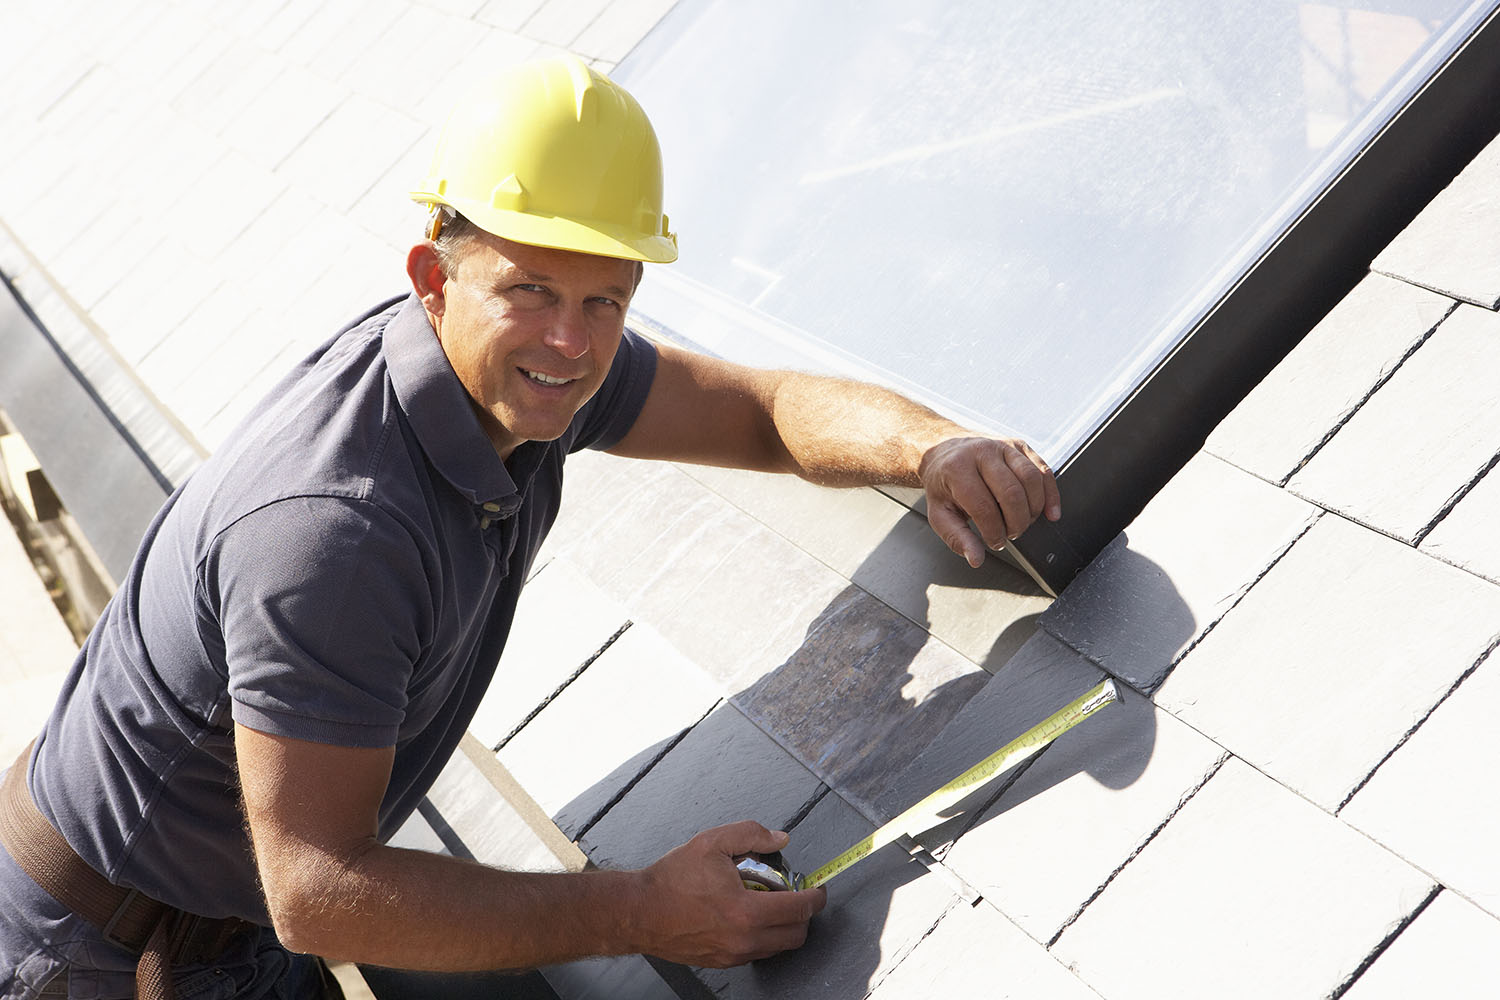 port st lucie fl roofers serving commercial and home clients